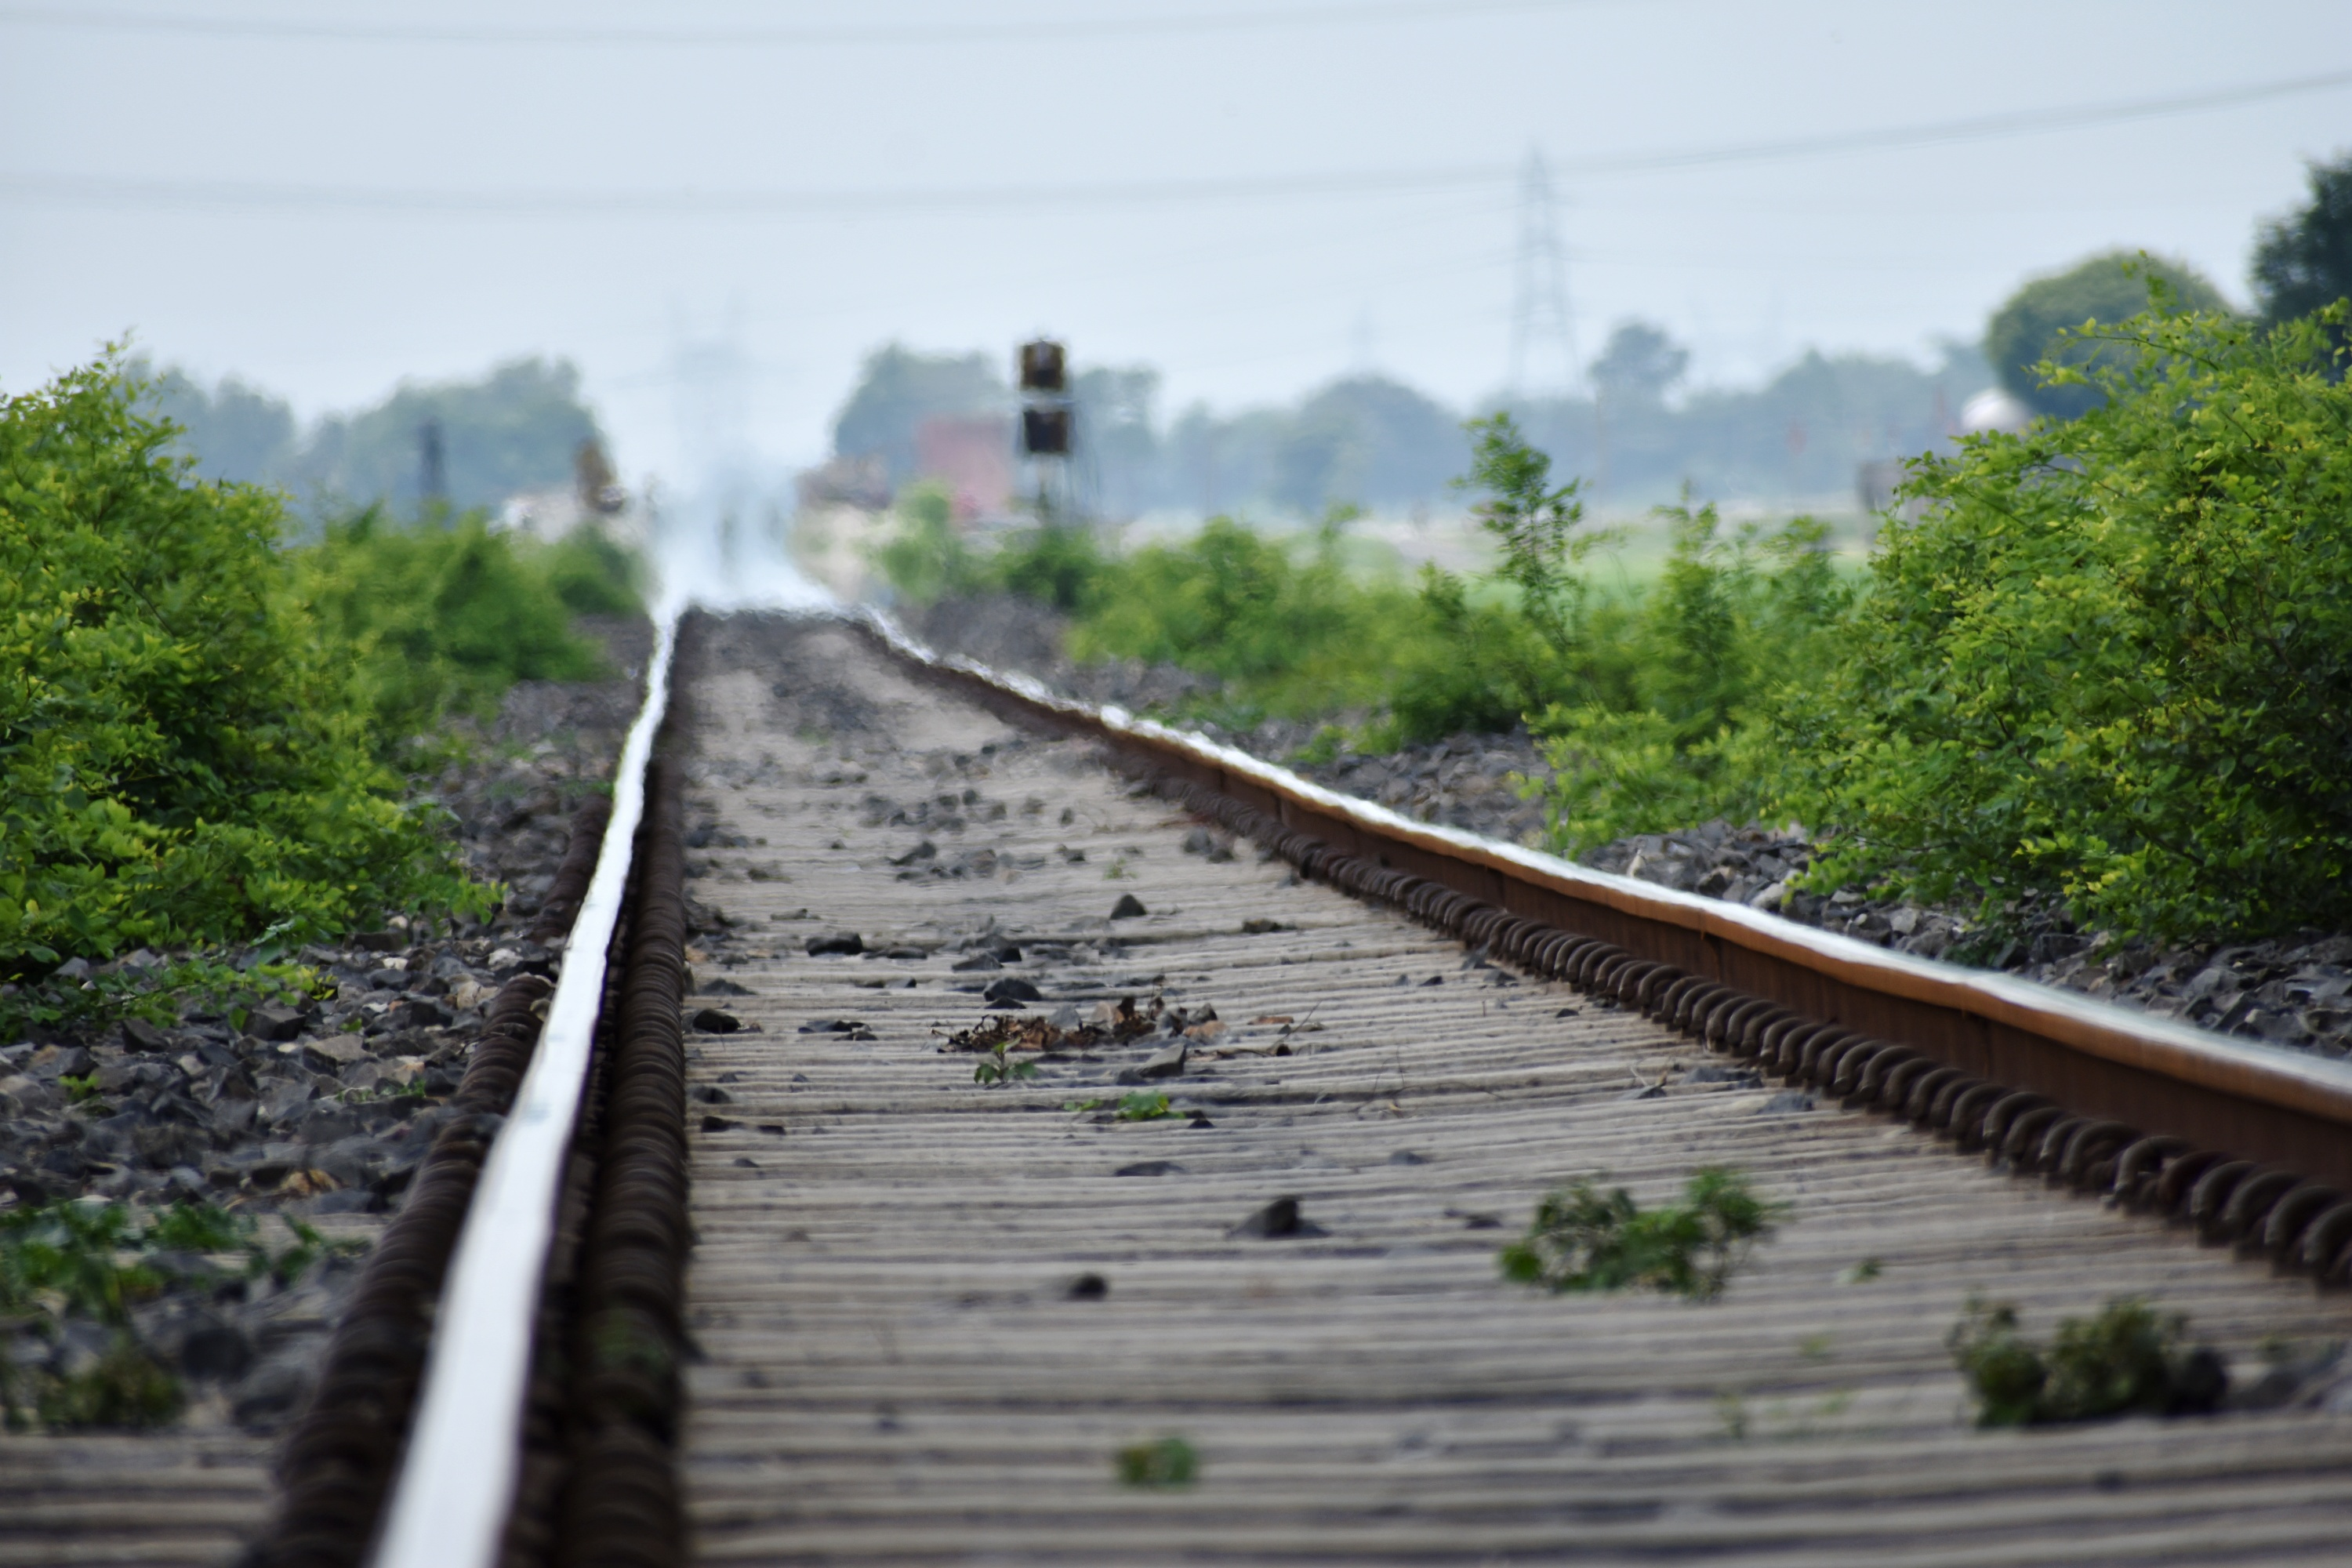 A Politician Vowed To Get This Man 'Killed'. The Man Was Found Dead on Railway Tracks.